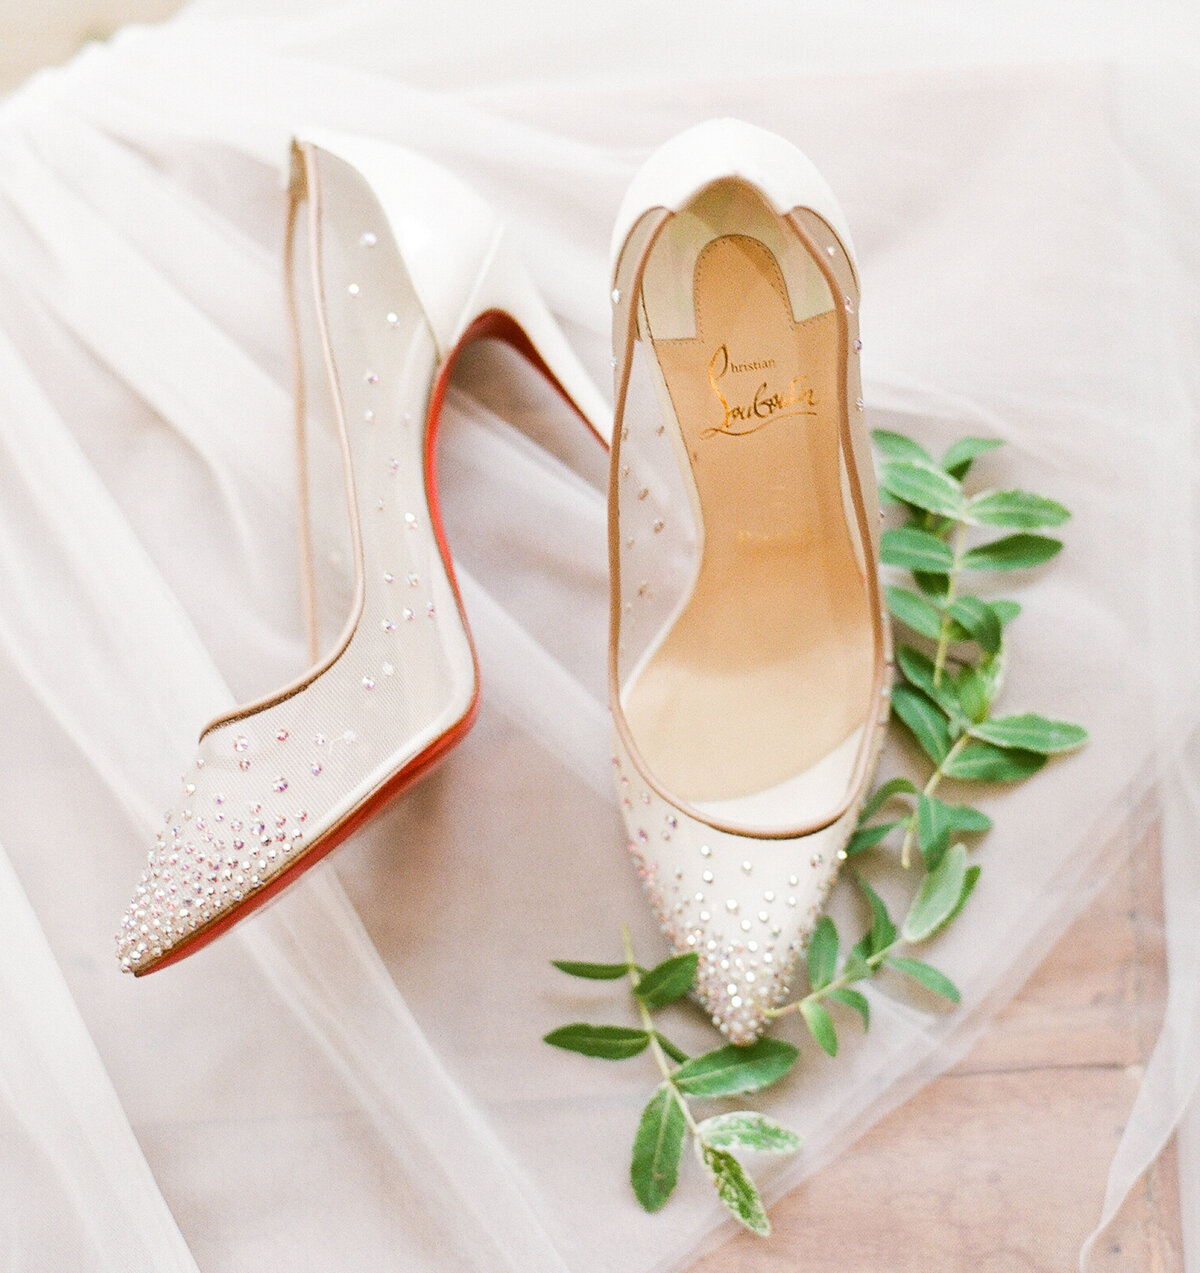 White Christian Louboutin bridal shoes